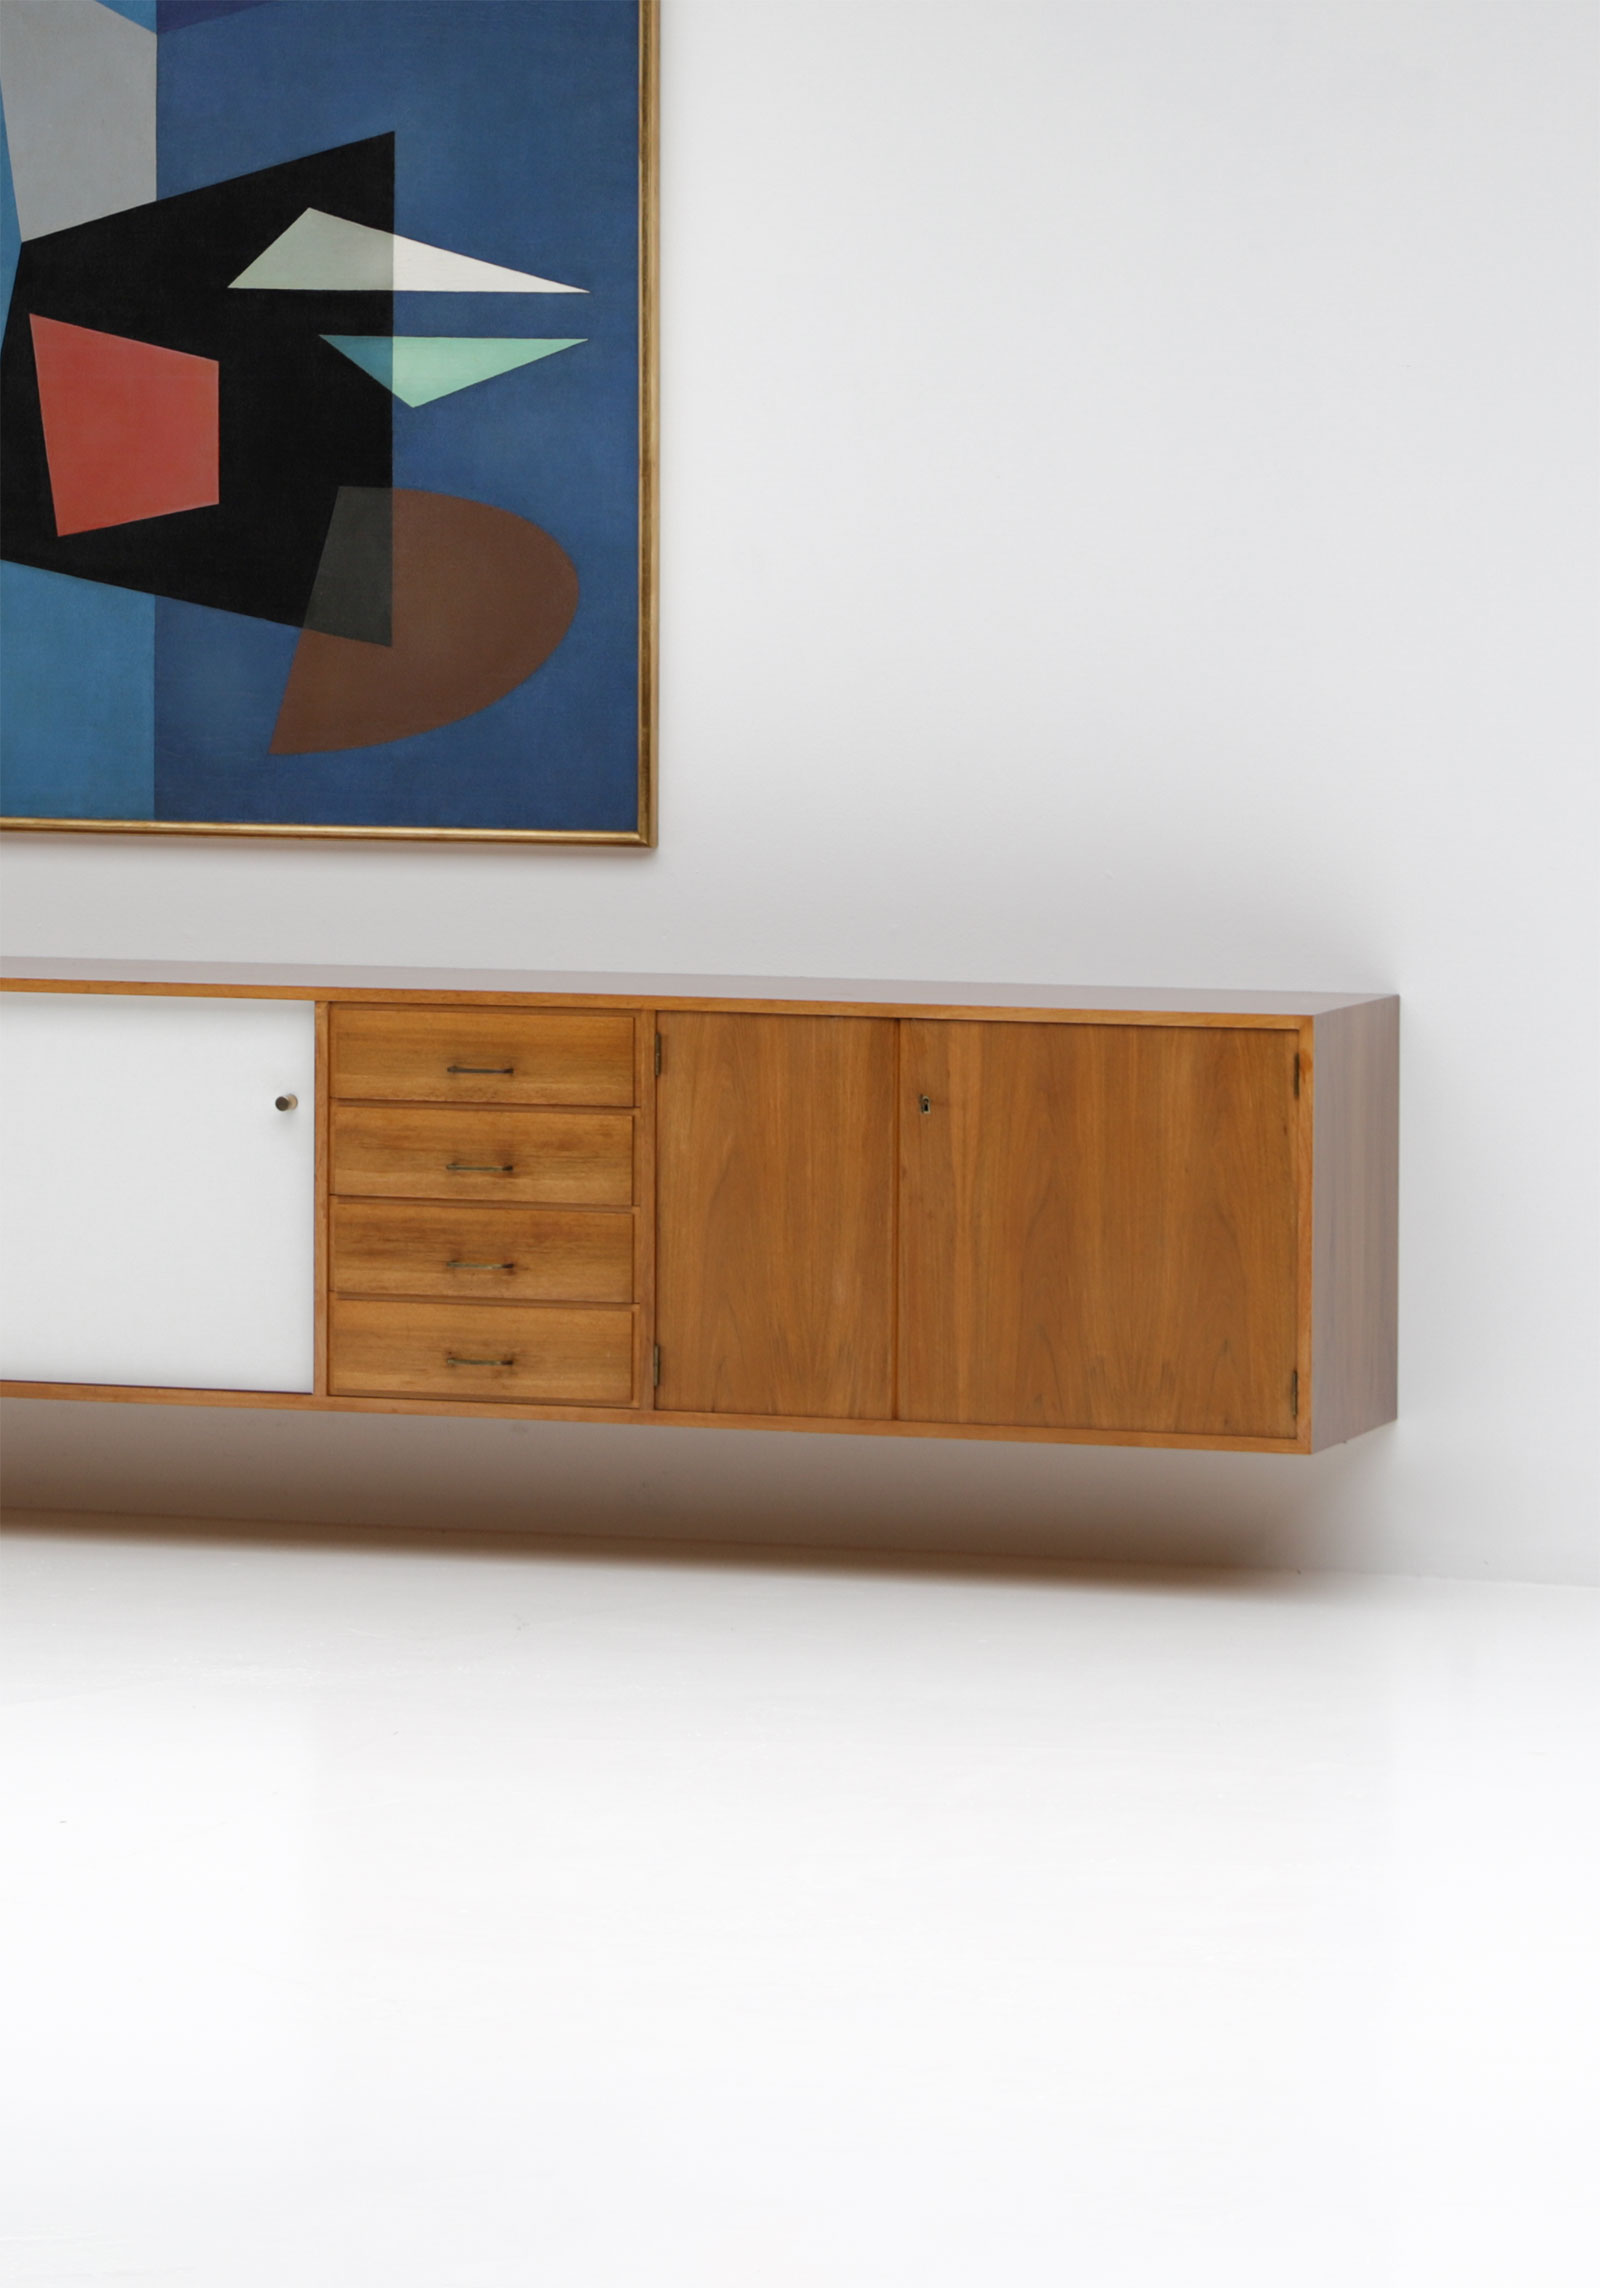 Jos De Mey Floating Sideboard image 4